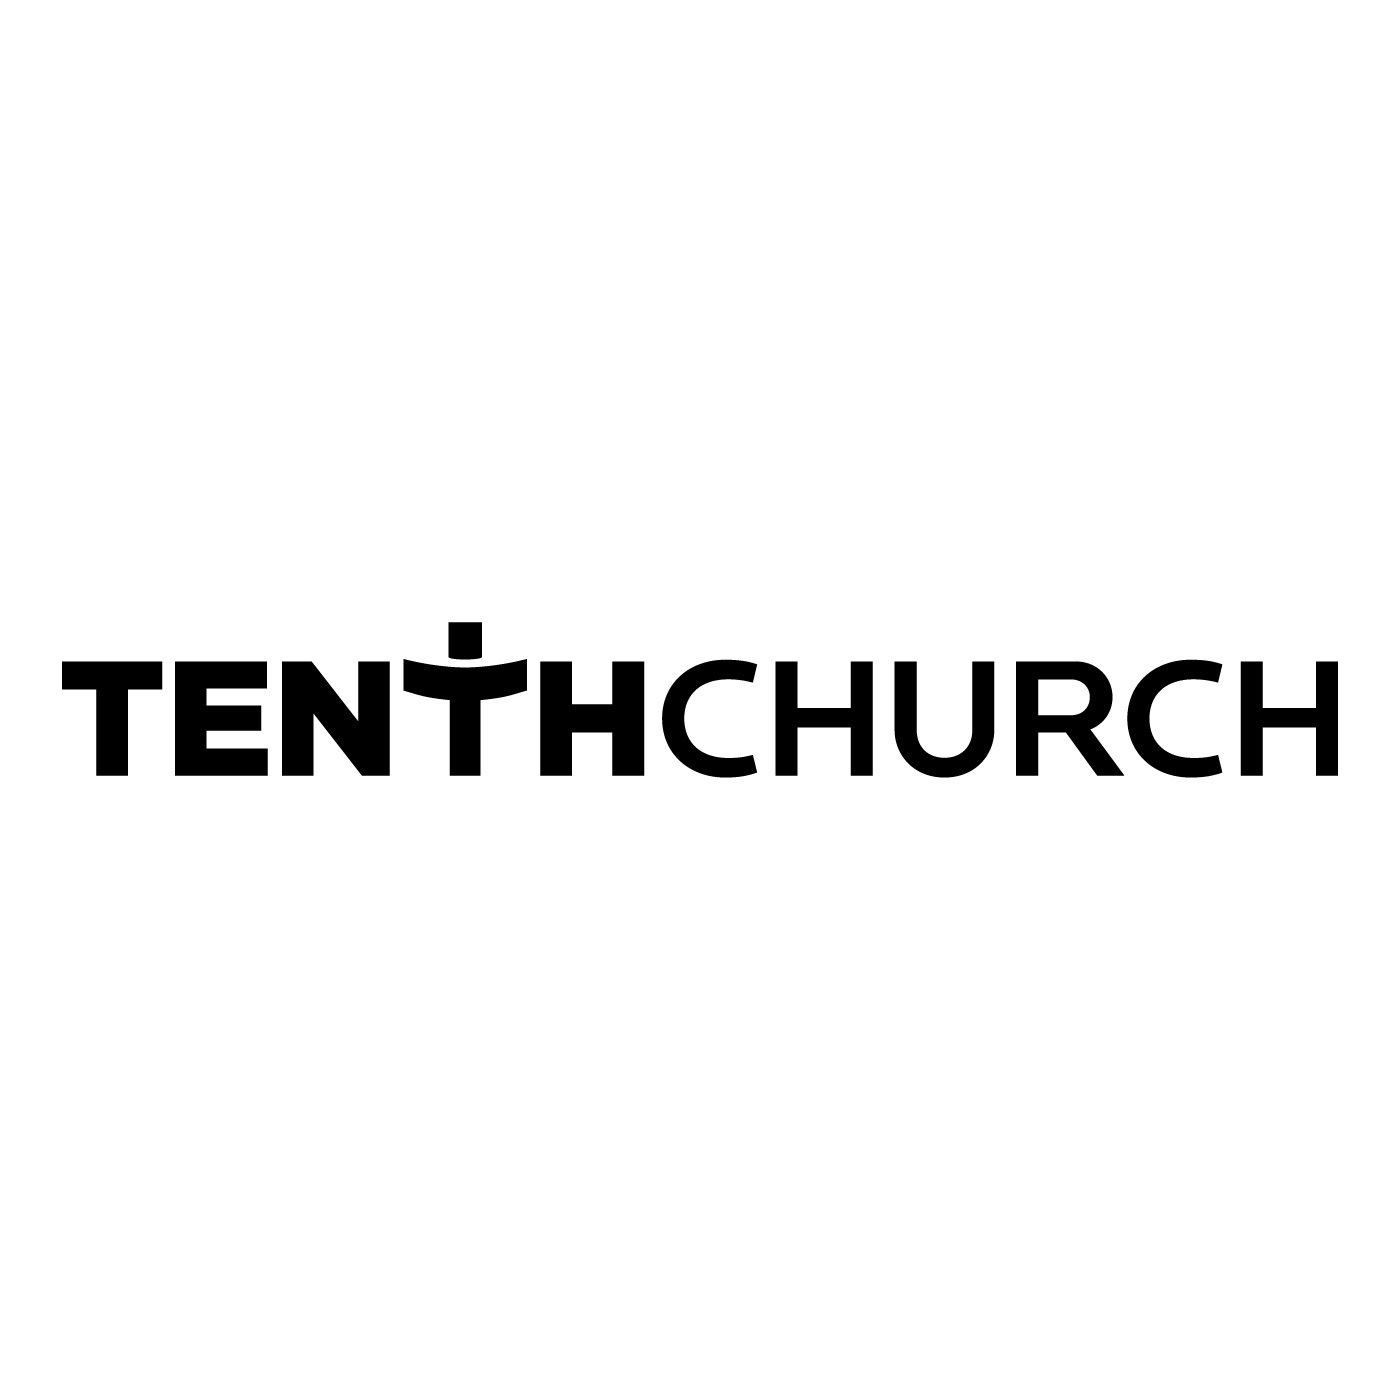 Tenth Church by Tenth Church on Apple Podcasts